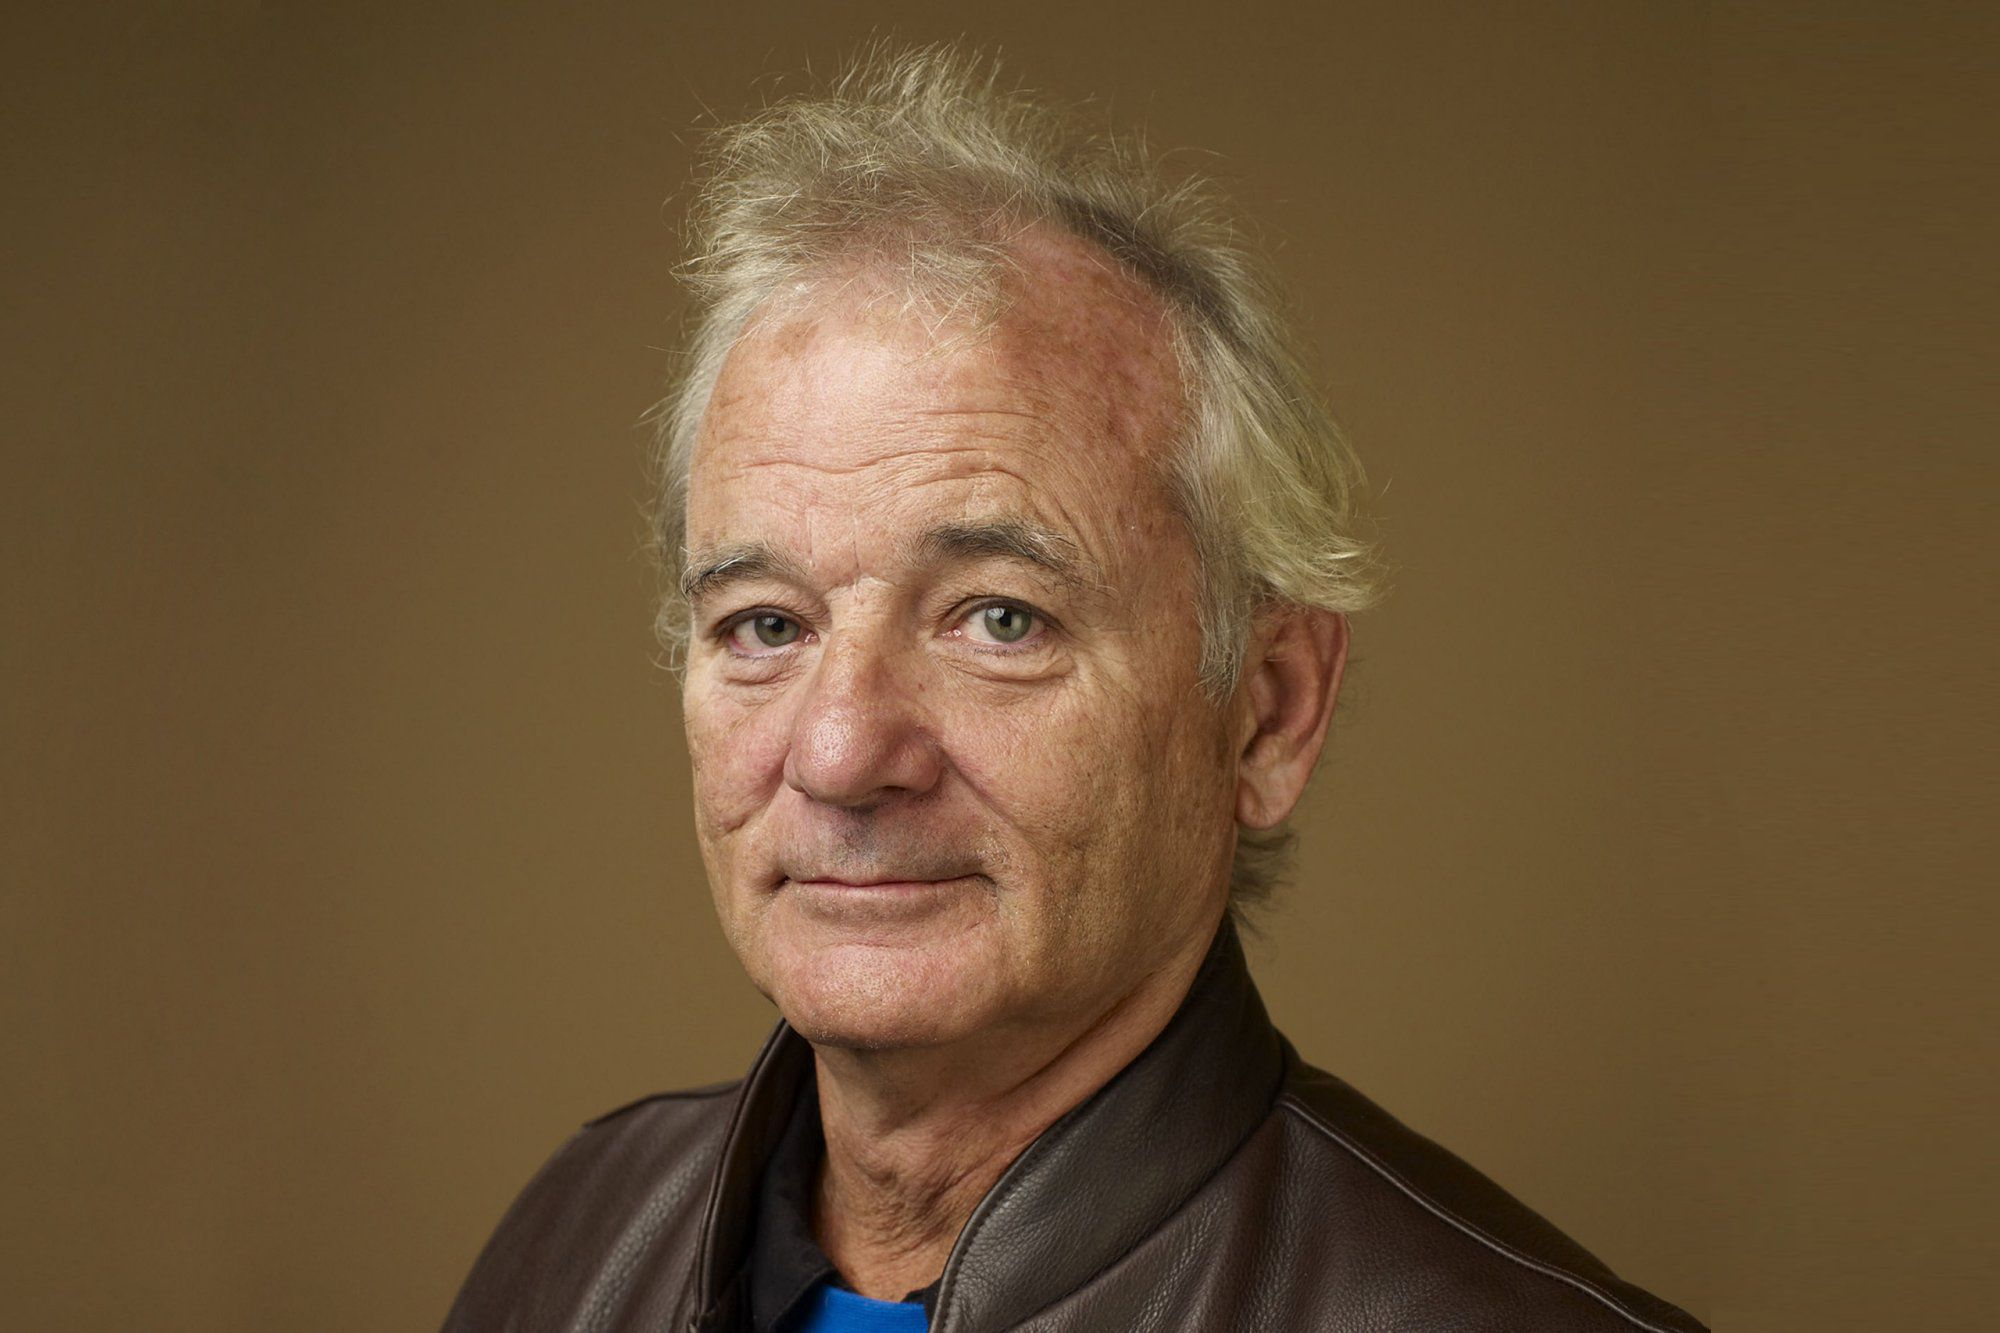 bill murray hd wallpaper - photo #14